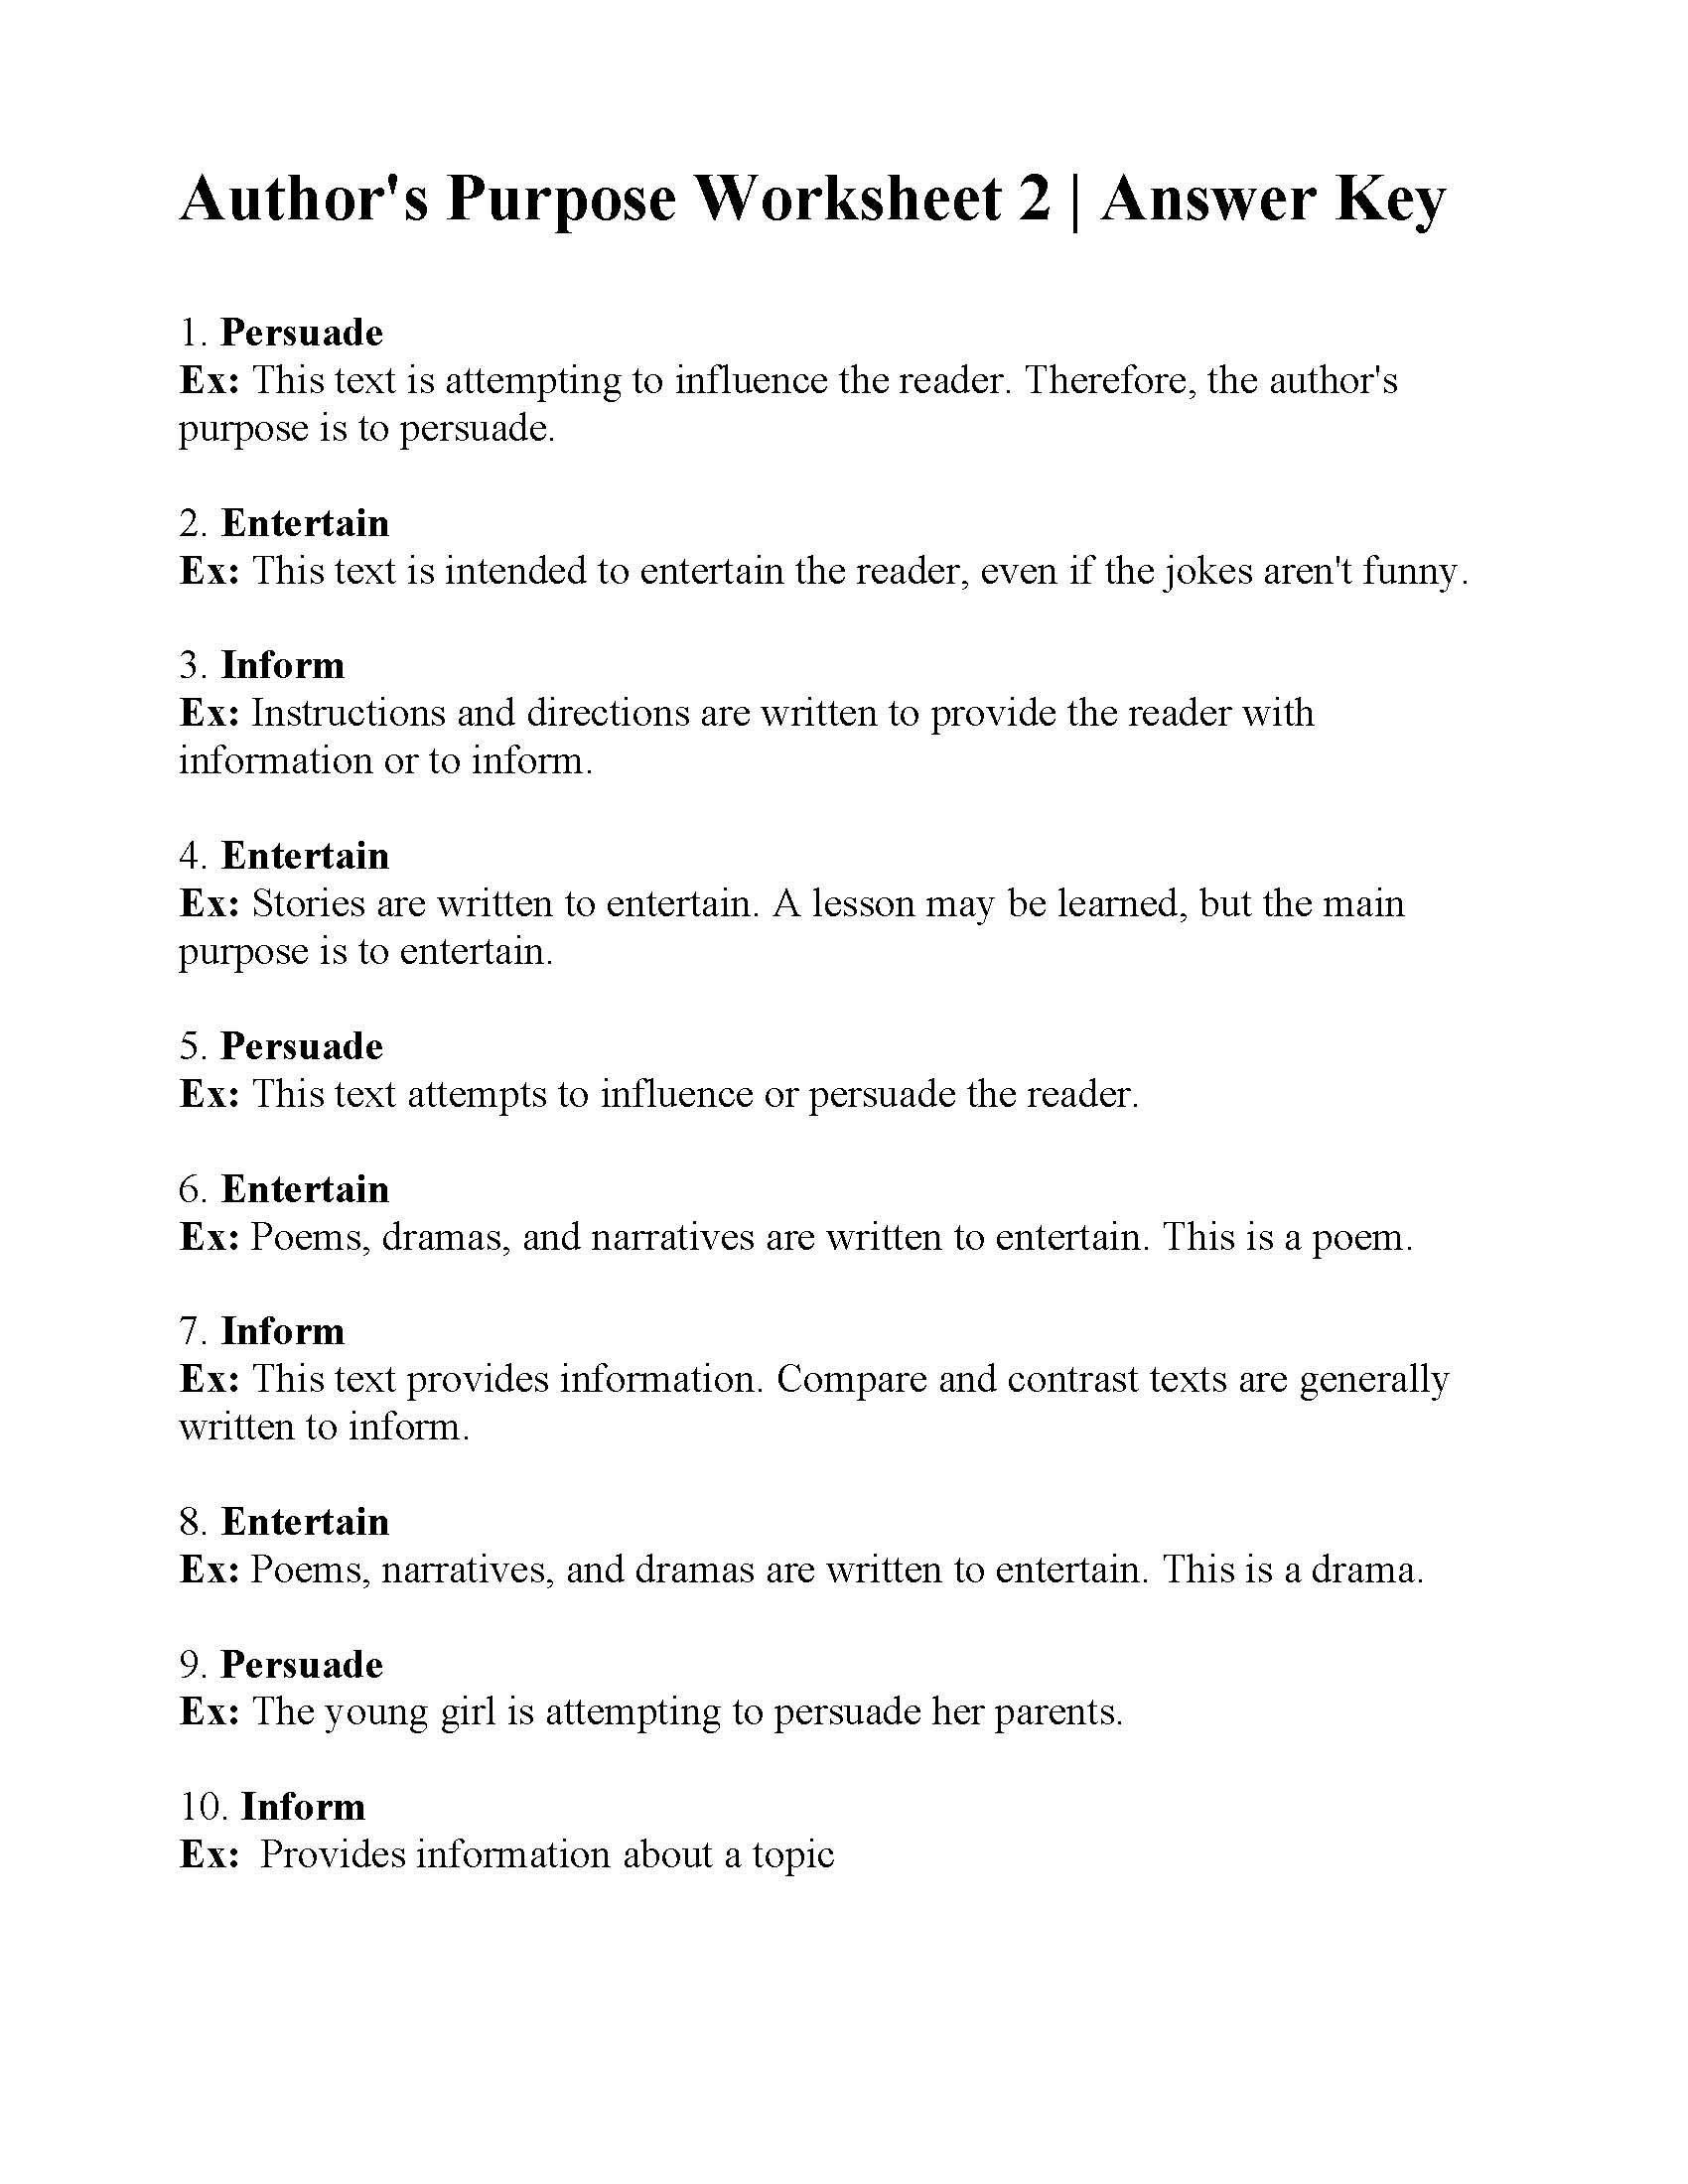 Science World Worksheet Answers This Is The Answer Key For